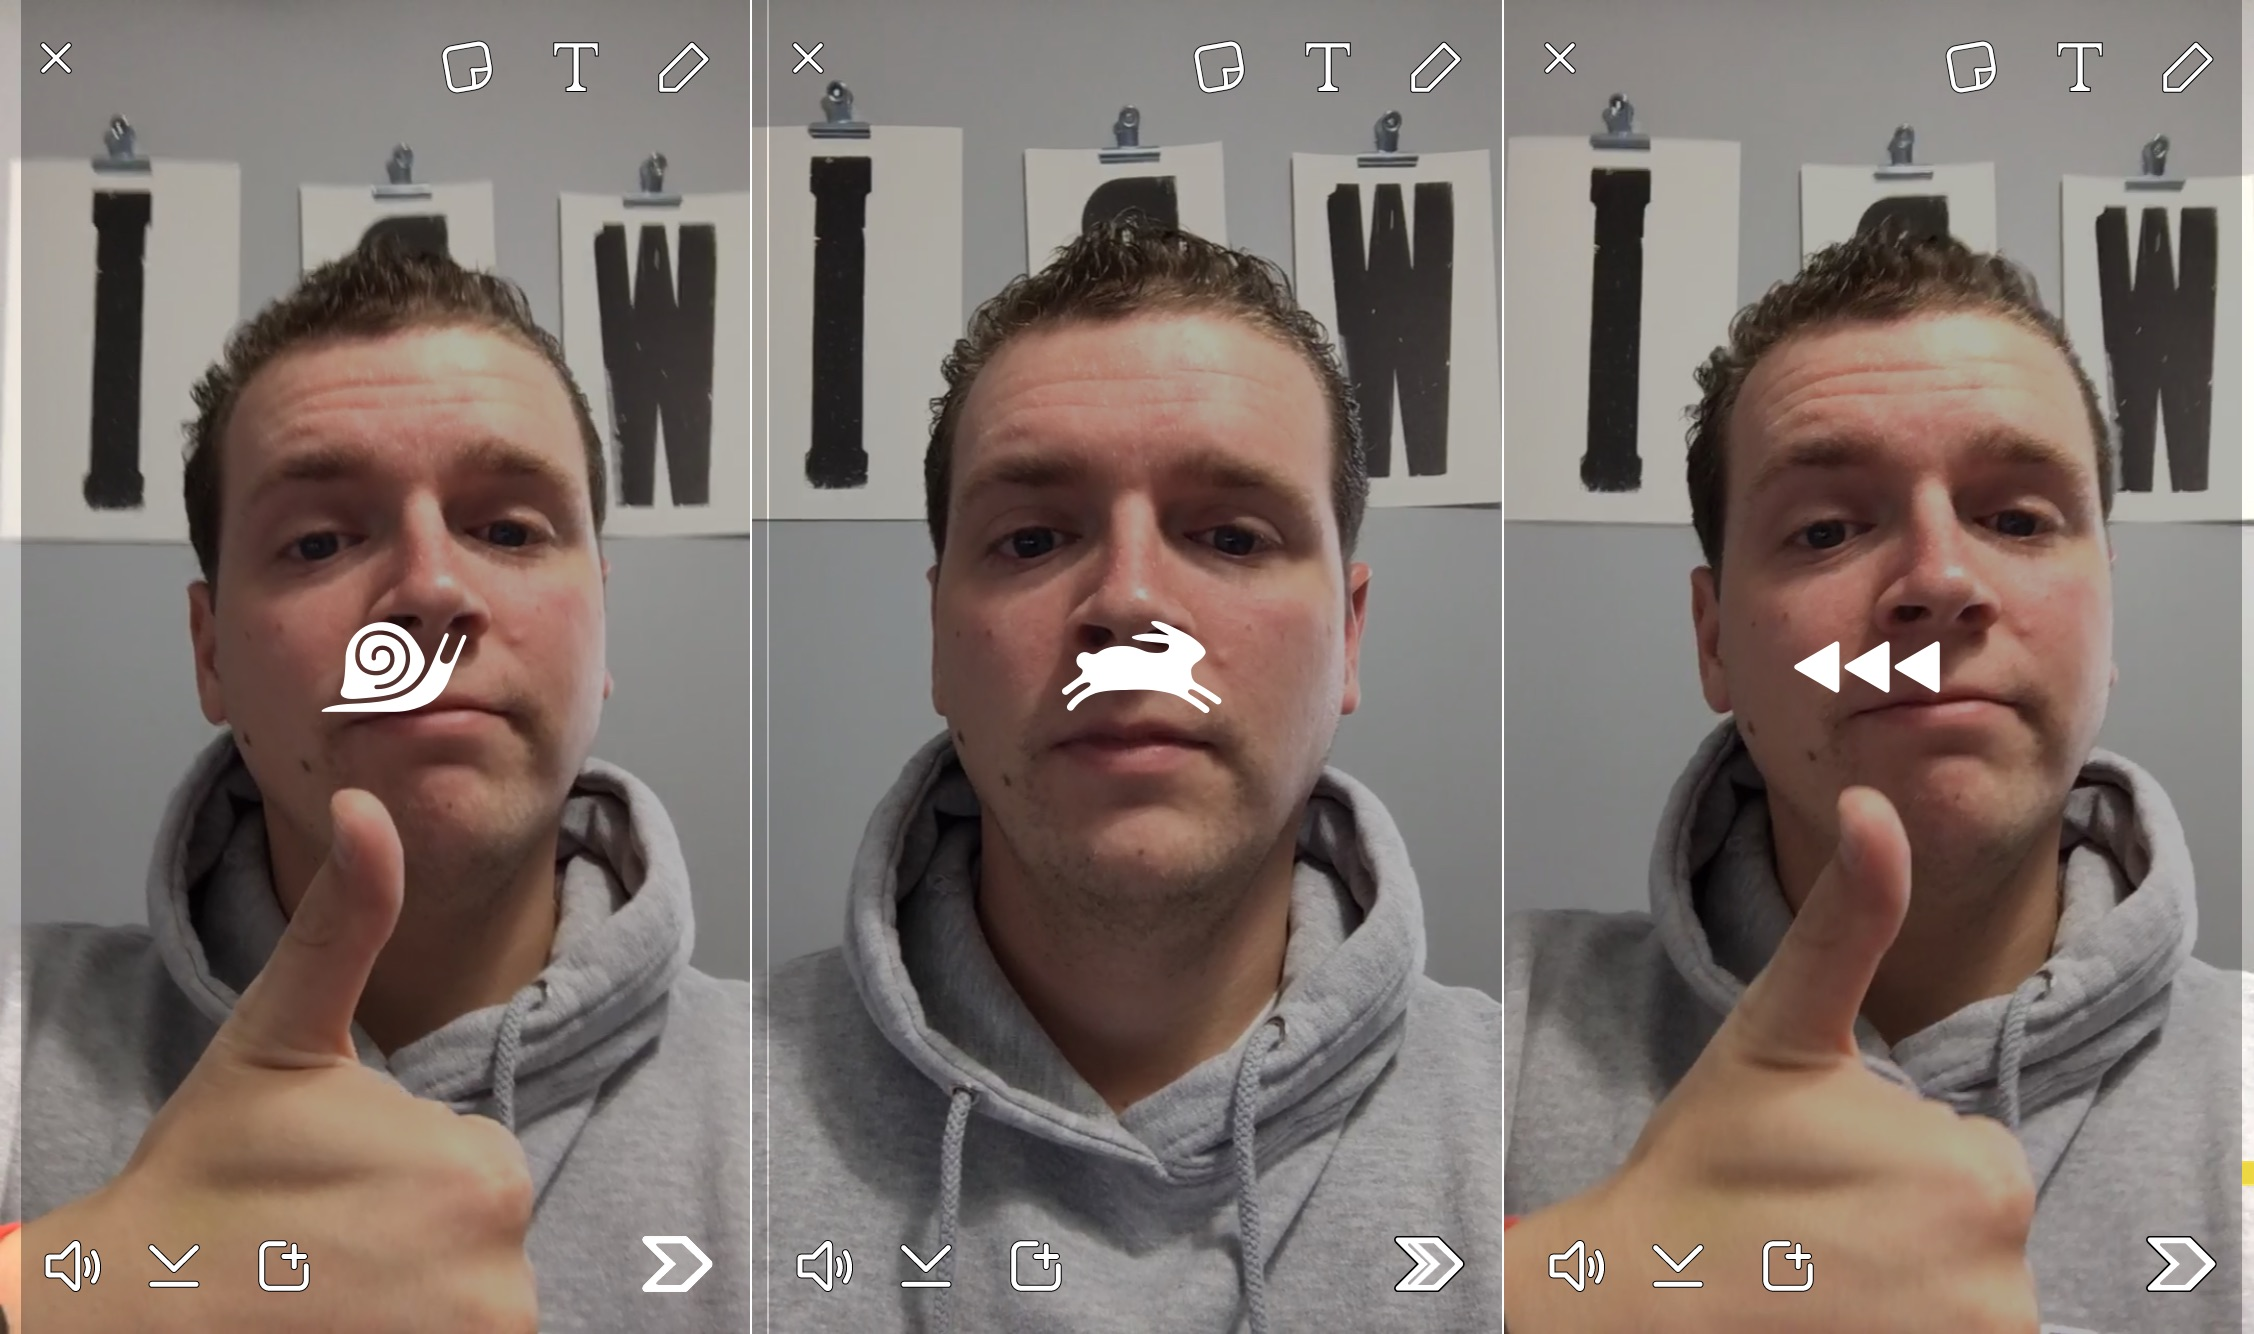 Check out the new Snapchat update that adds video filters to slow down, speed up and reverse your Snapchats.